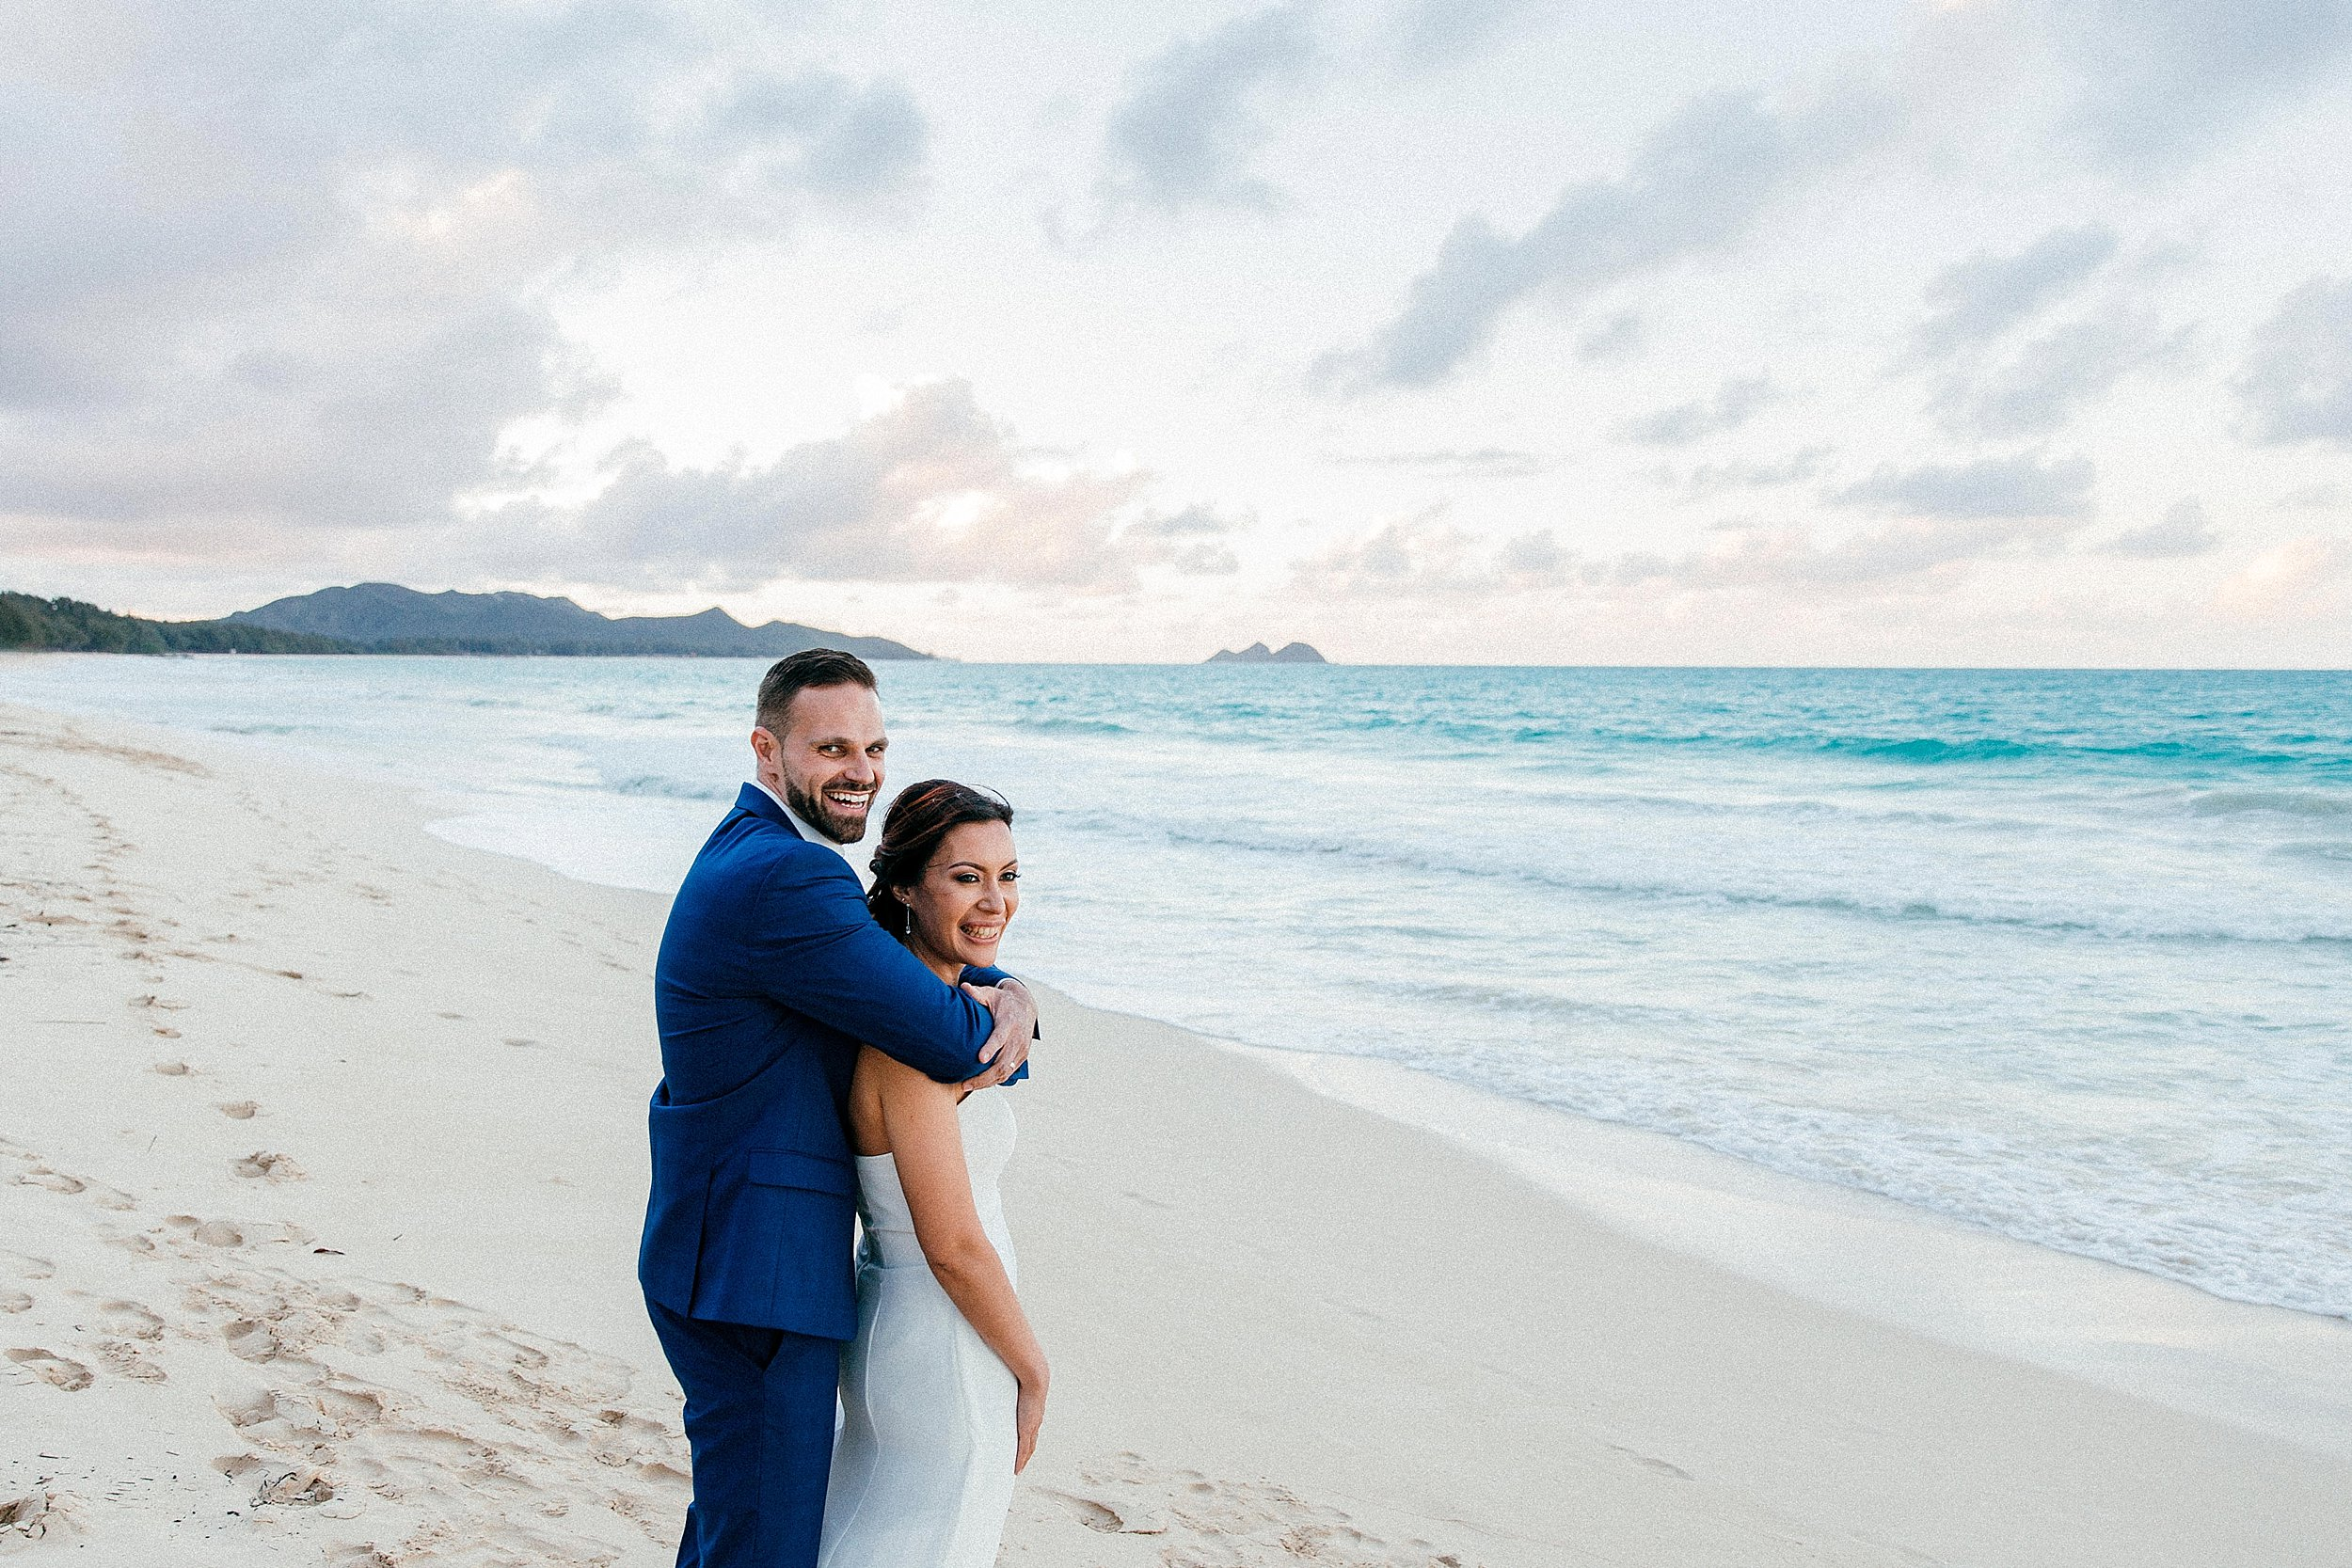 French Elopement at Waimanalo Beach in Oahu, Hawaii